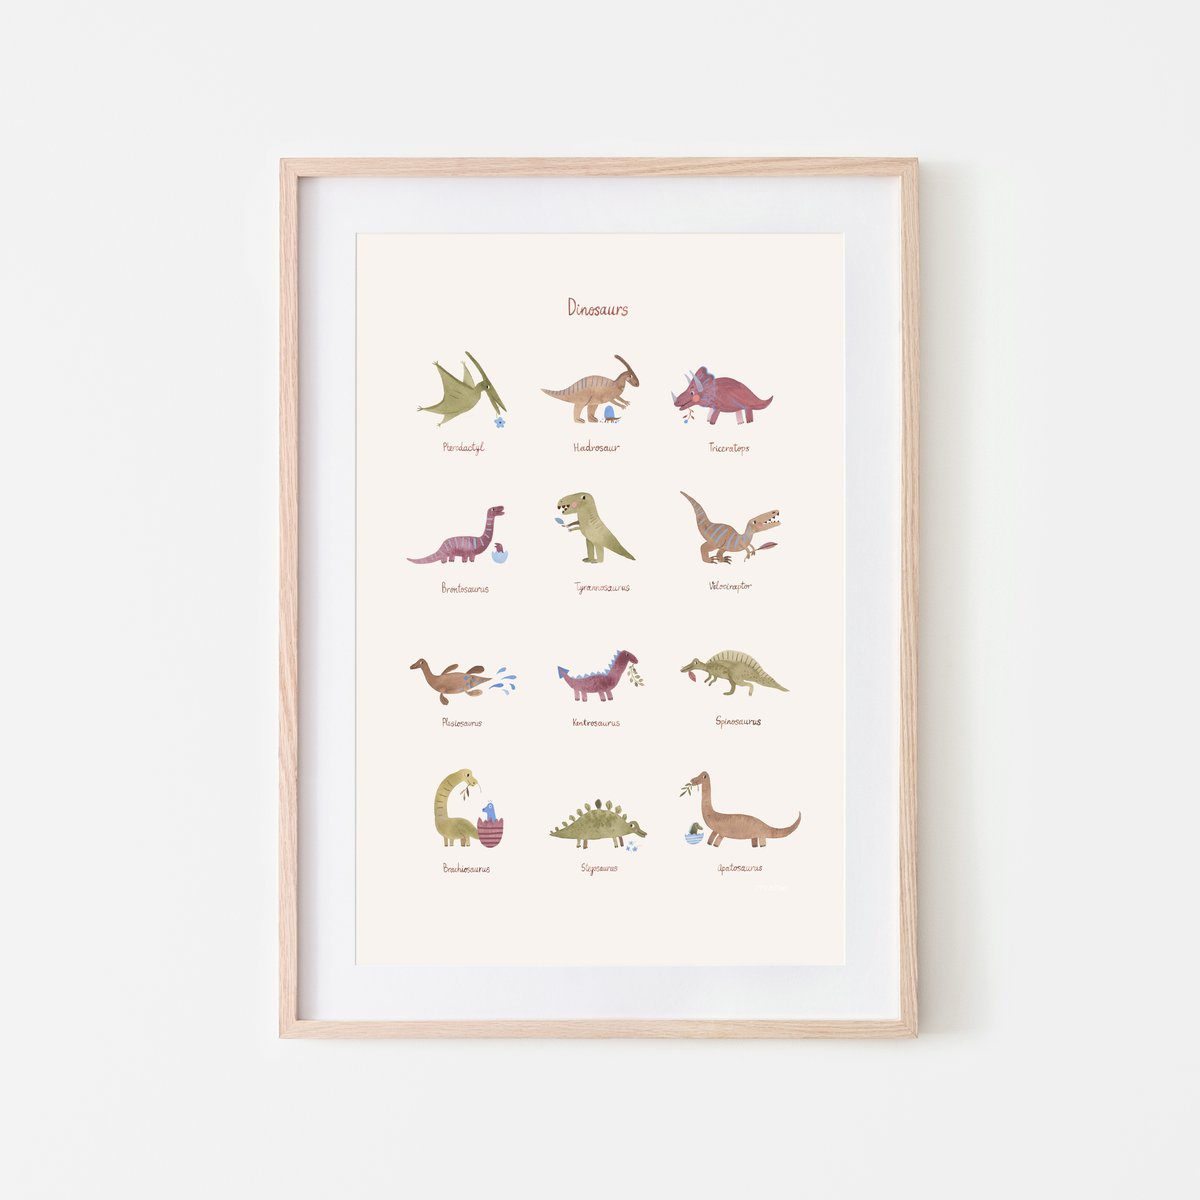 Dinosaur Poster - The Yellow Canary